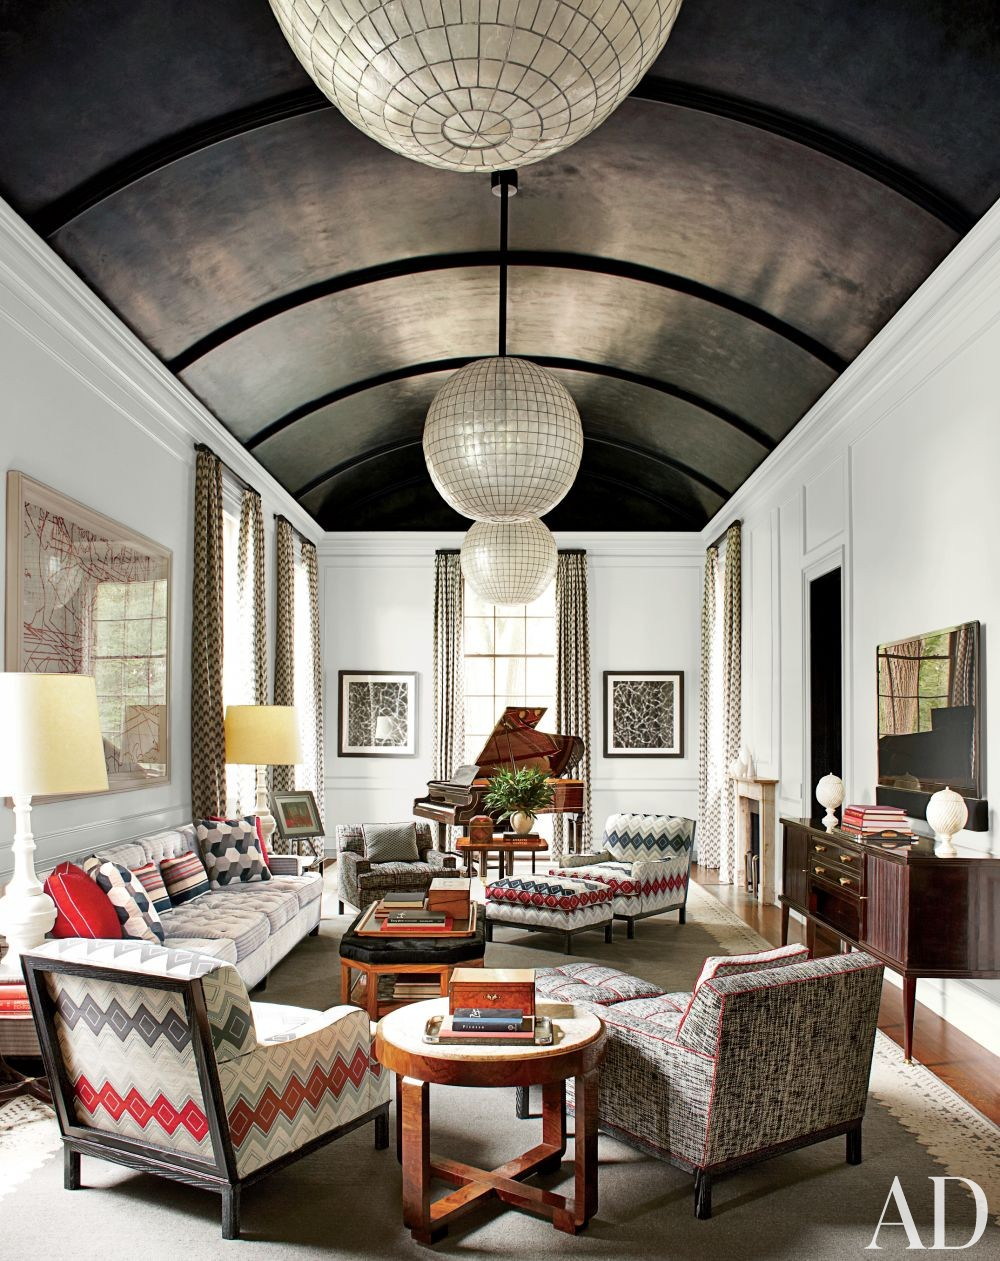 Contemporary Living Room by S.R. Gambrel Inc. and Oliver Cope Architect in Old Westbury, New York